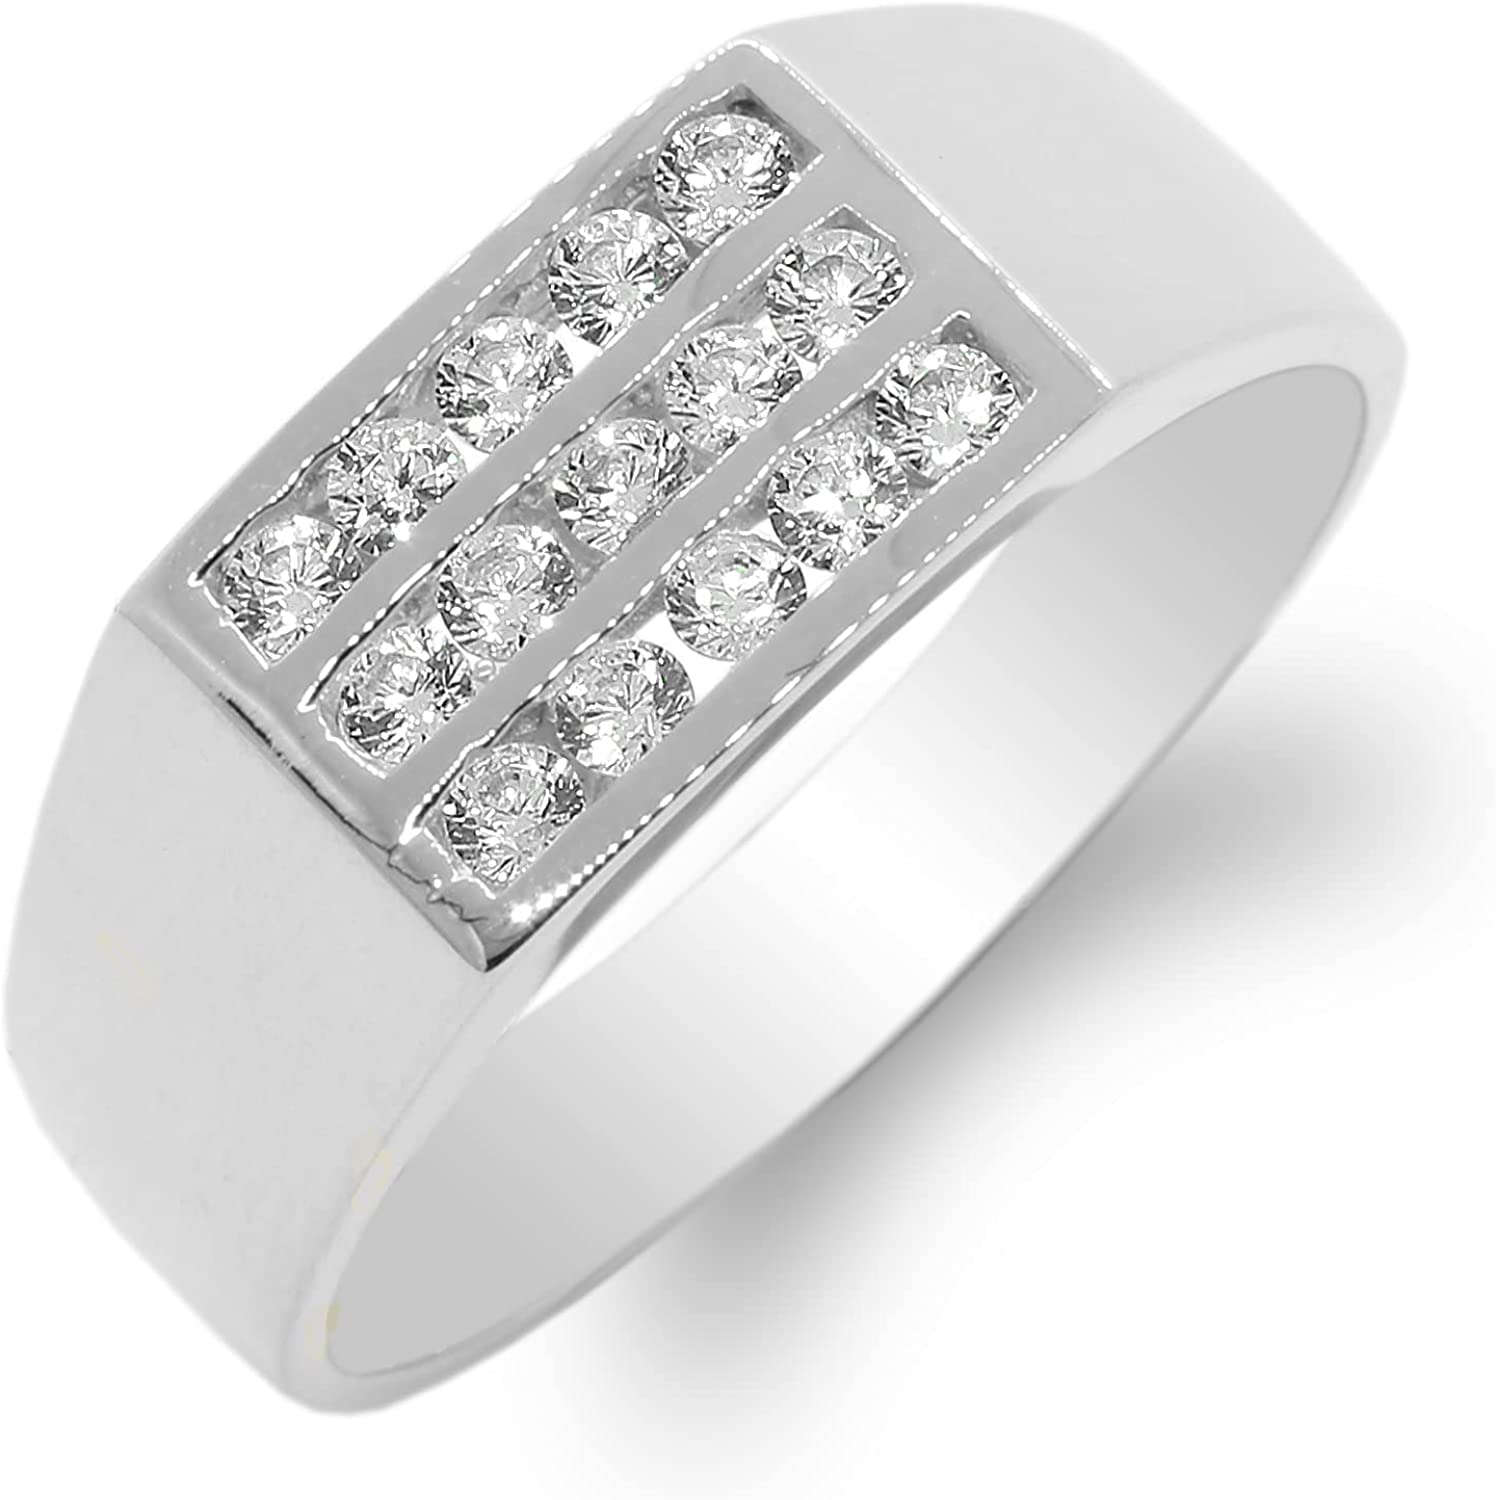 JamesJenny Mens 14K White Gold Round CZ Special price Ring Some reservation Size 12 Band